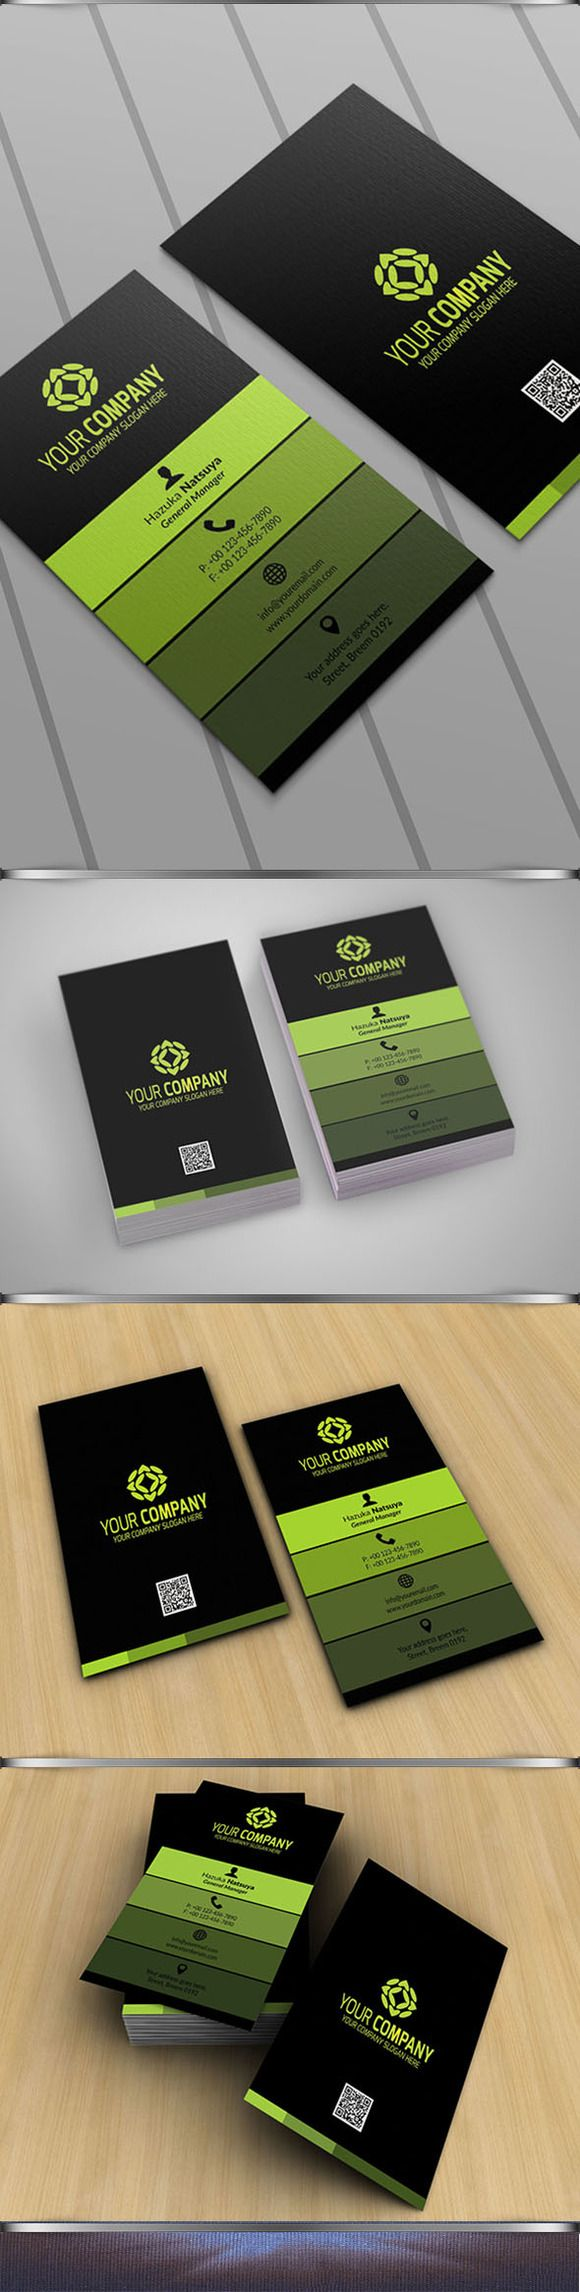 Modern Corporate Business Card Vol 3 @creativework247                                                                                                                                                                                 More